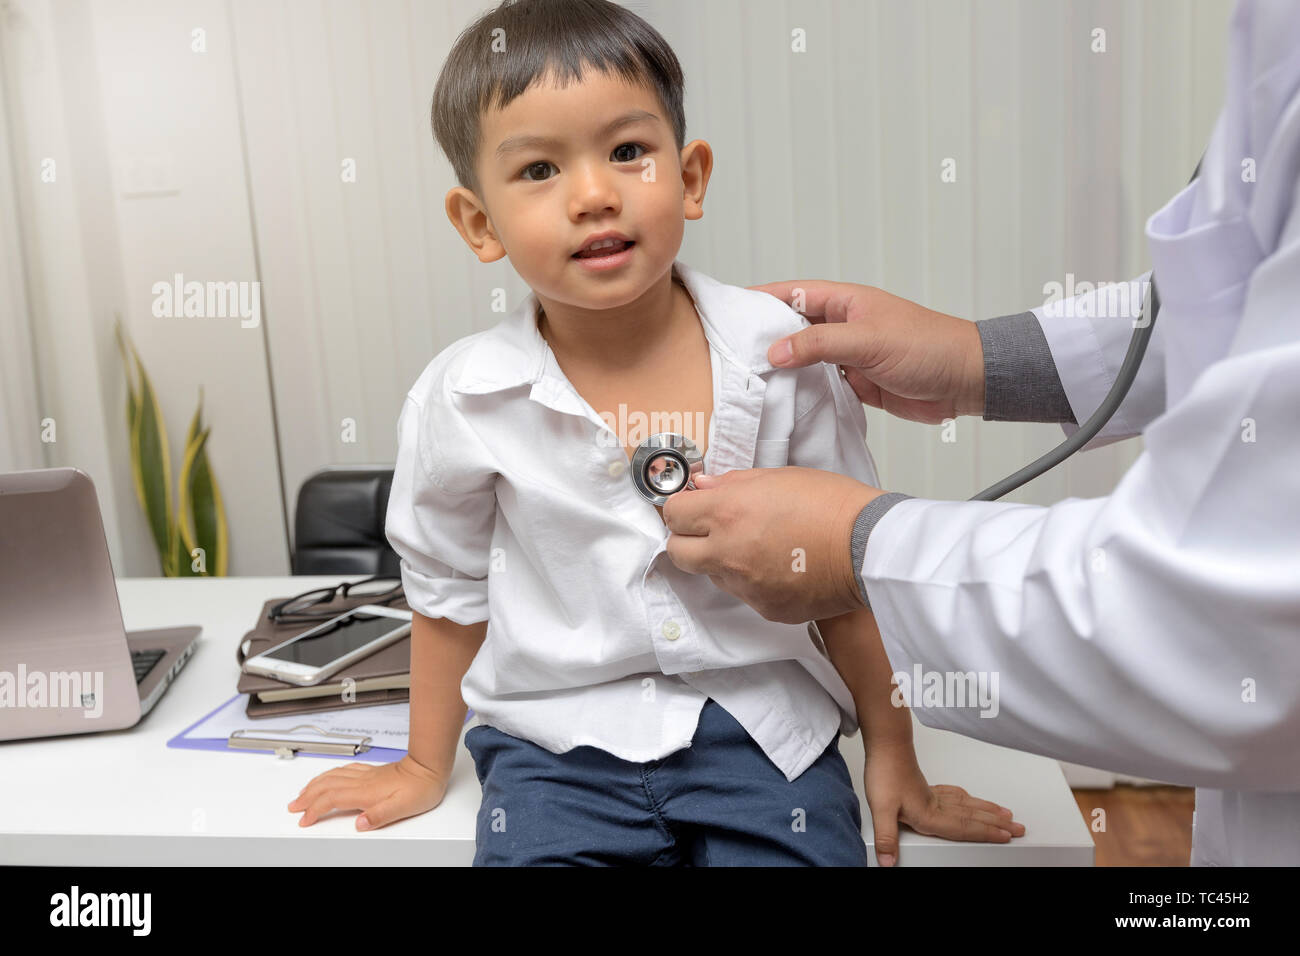 Pediatrician is diagnosing little patient using a stethoscope - Stock Image